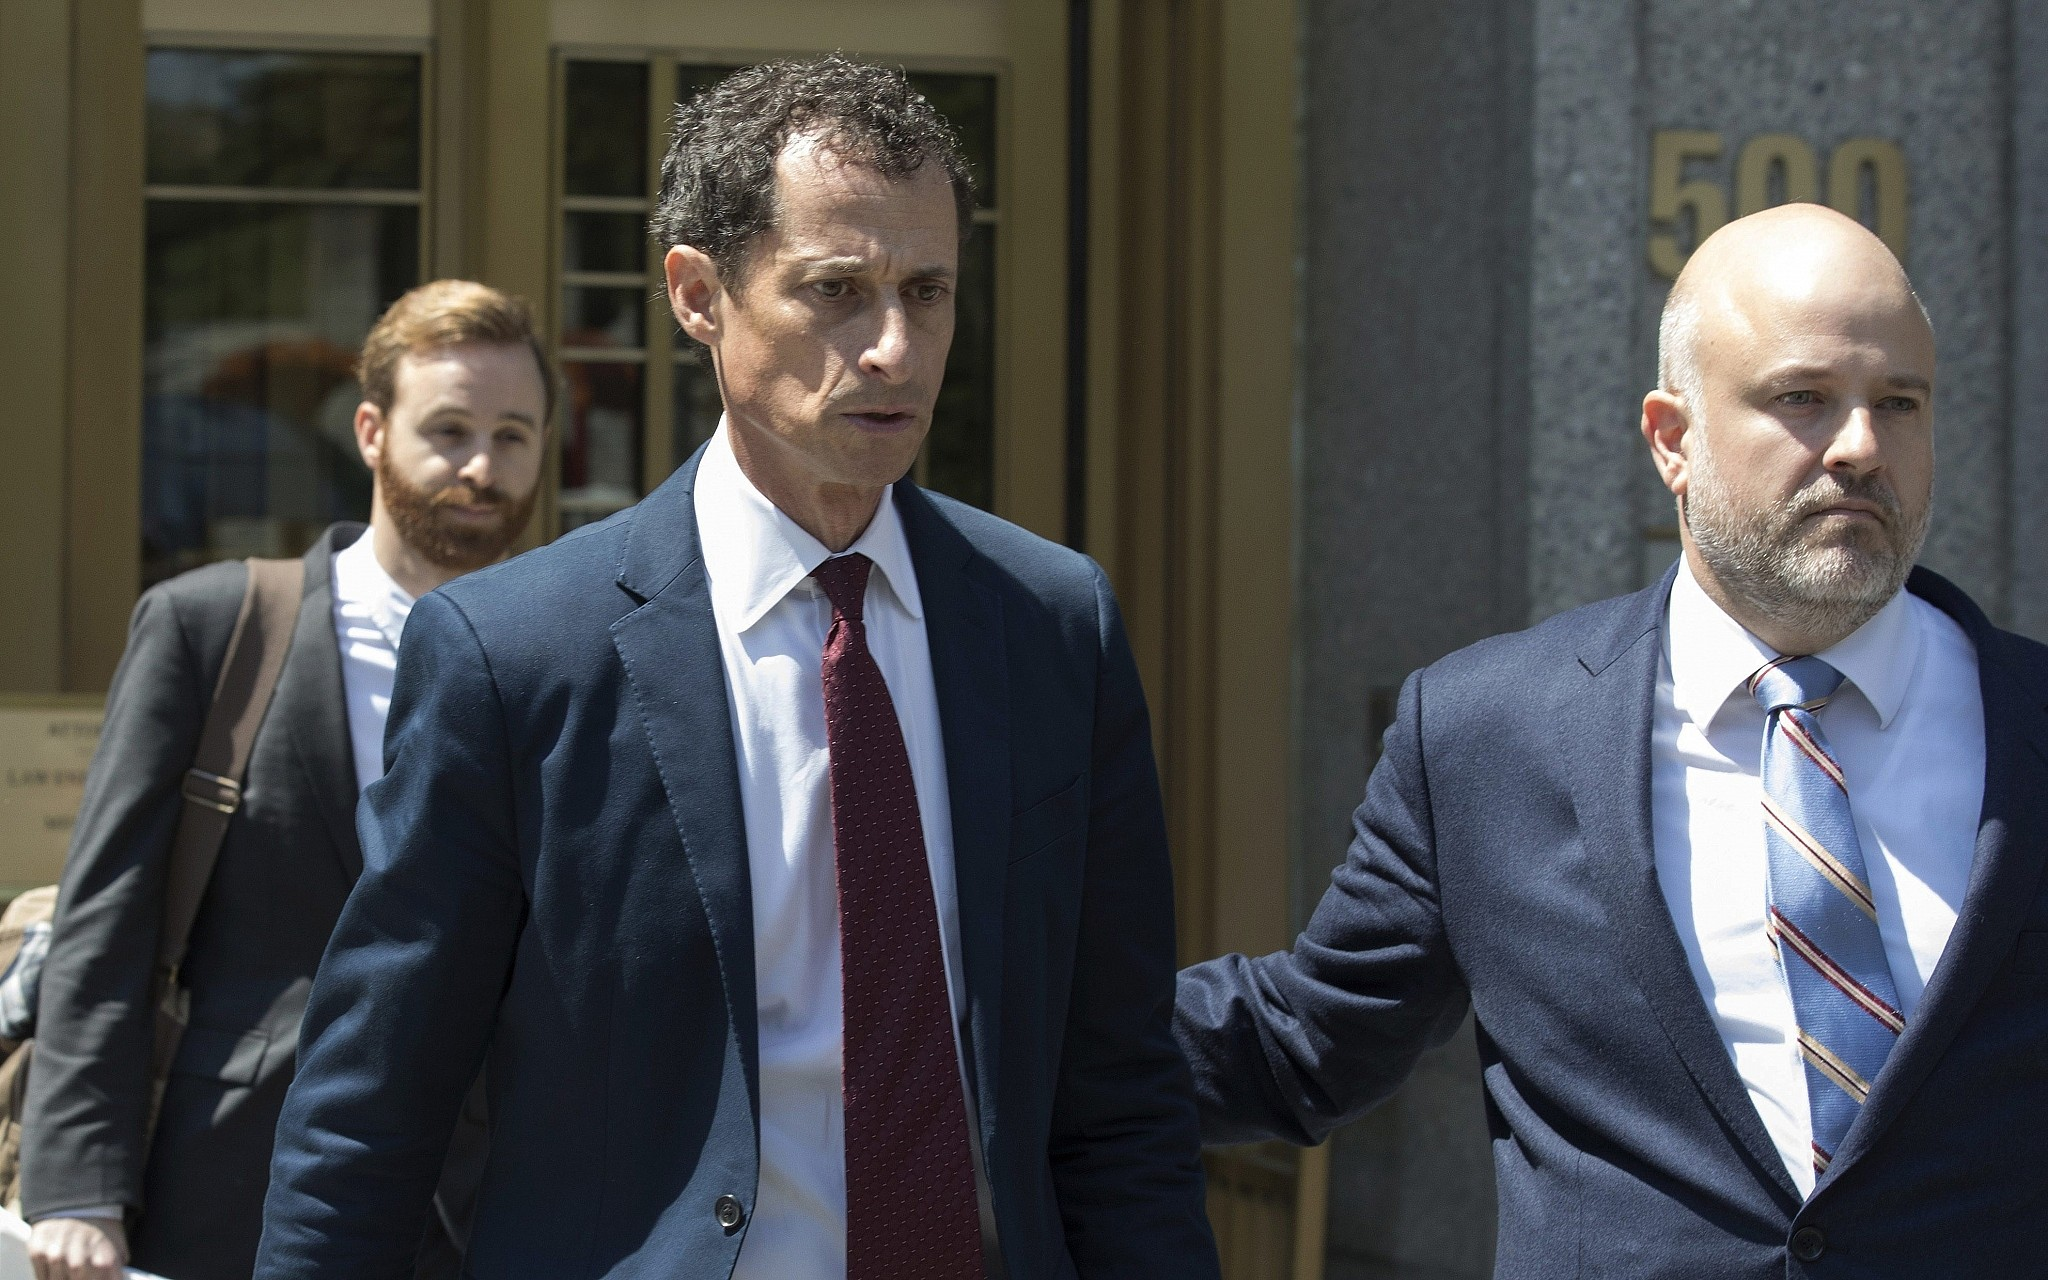 Prosecutors want two-year prison sentence for Anthony Weiner